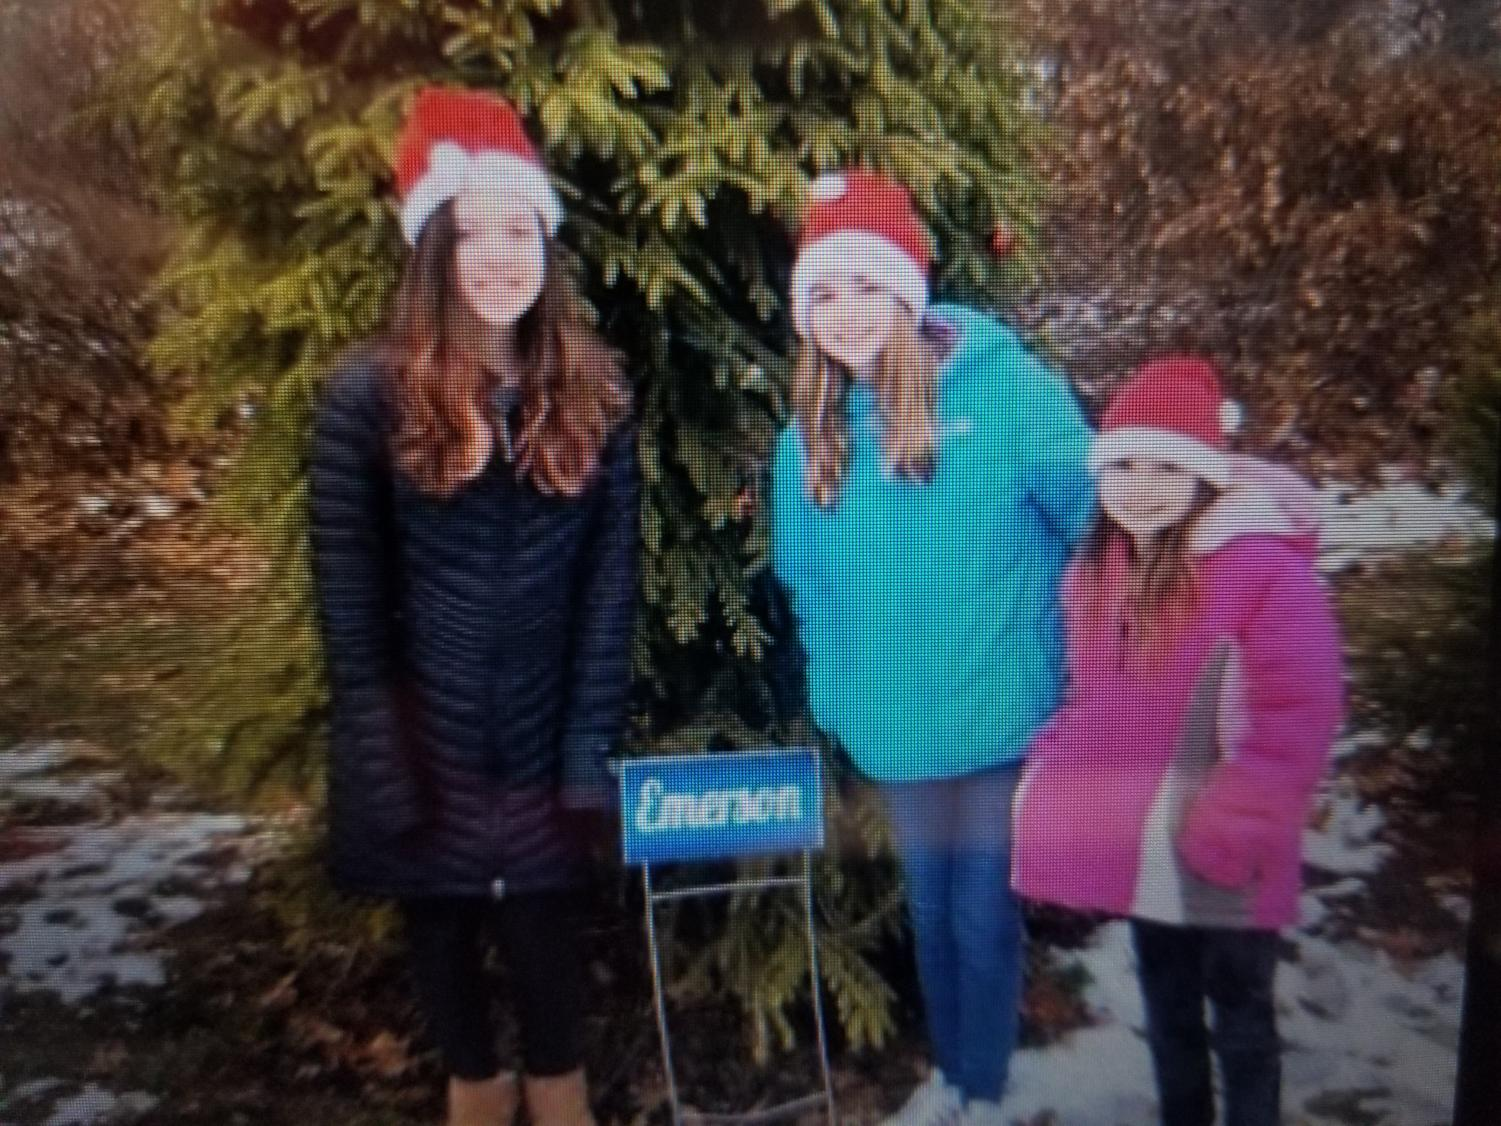 Kiera McGuire and sisters  Bella and Lila Hassett of Emerson helped decorate the borough's tree at Van Saun County Park earlier this month.